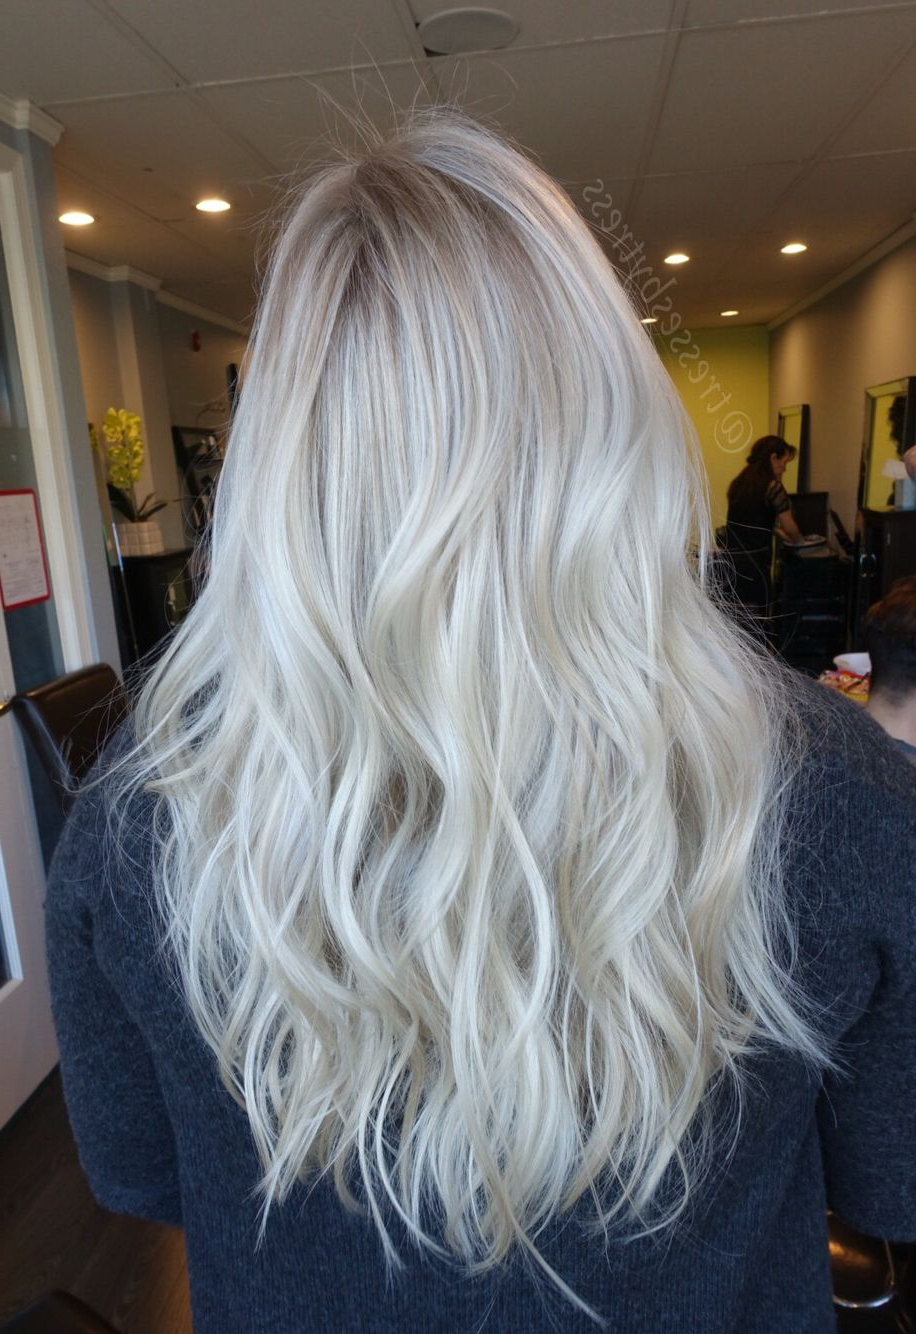 Pin On Ombre/balayage With Ash Blonde Balayage Ombre On Dark Hairstyles (View 11 of 20)